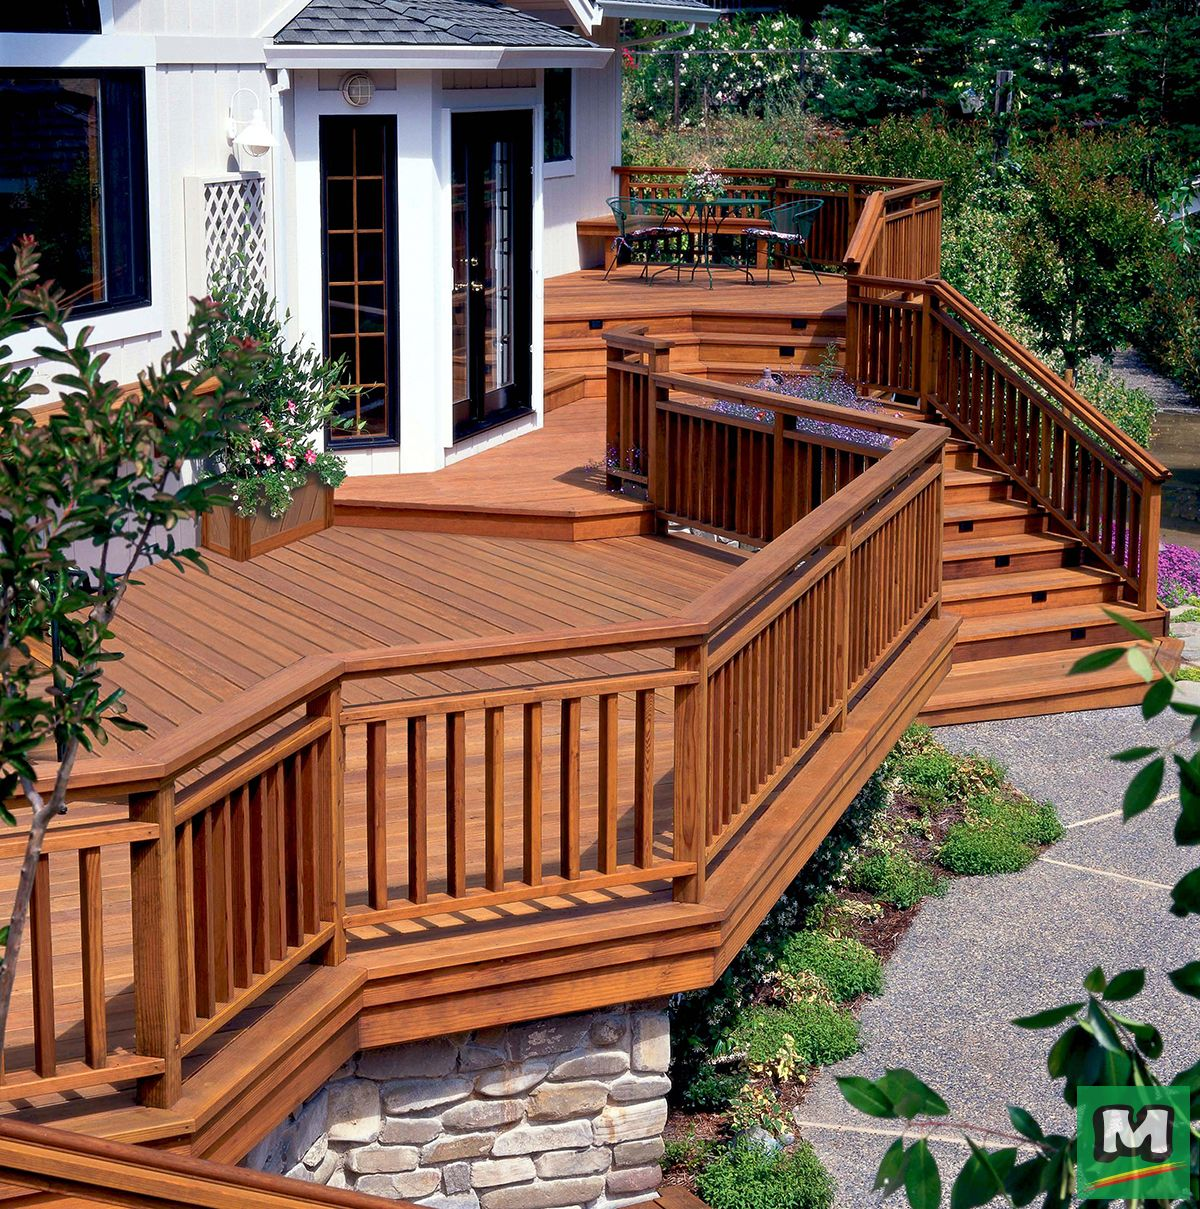 Ac2 Cedartone Premium Pressure Treated Decking Is Truly A Premium Product Its Rich Color Provides A Pleasing Aest Pressure Treated Deck Outdoor Areas Outdoor